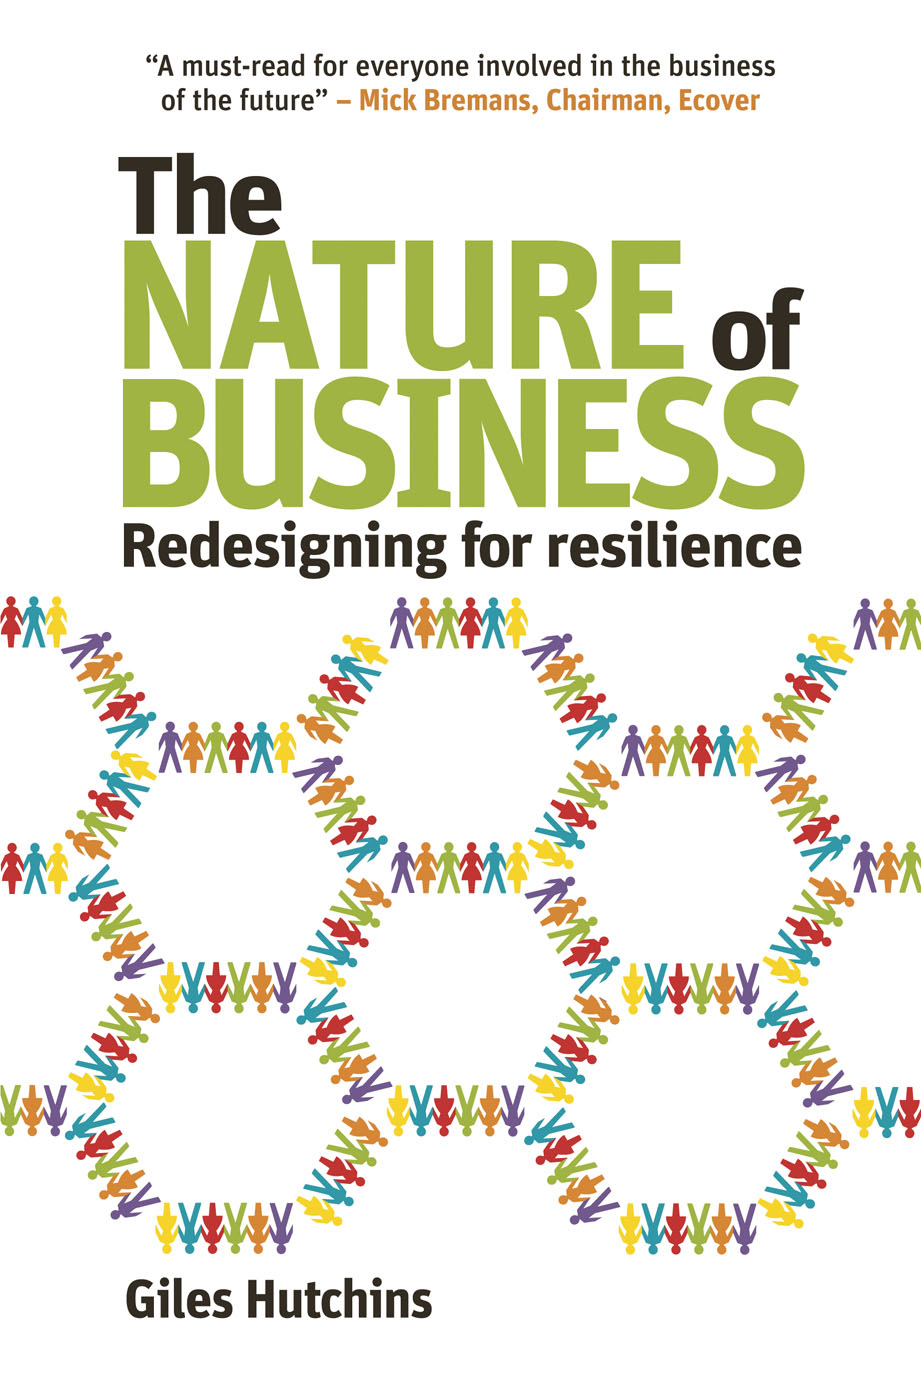 the nature and purpose of business research The nature and purpose of a literature review  suppose, for example, that you select the subject of business ethics for your research, and in particular wish to.